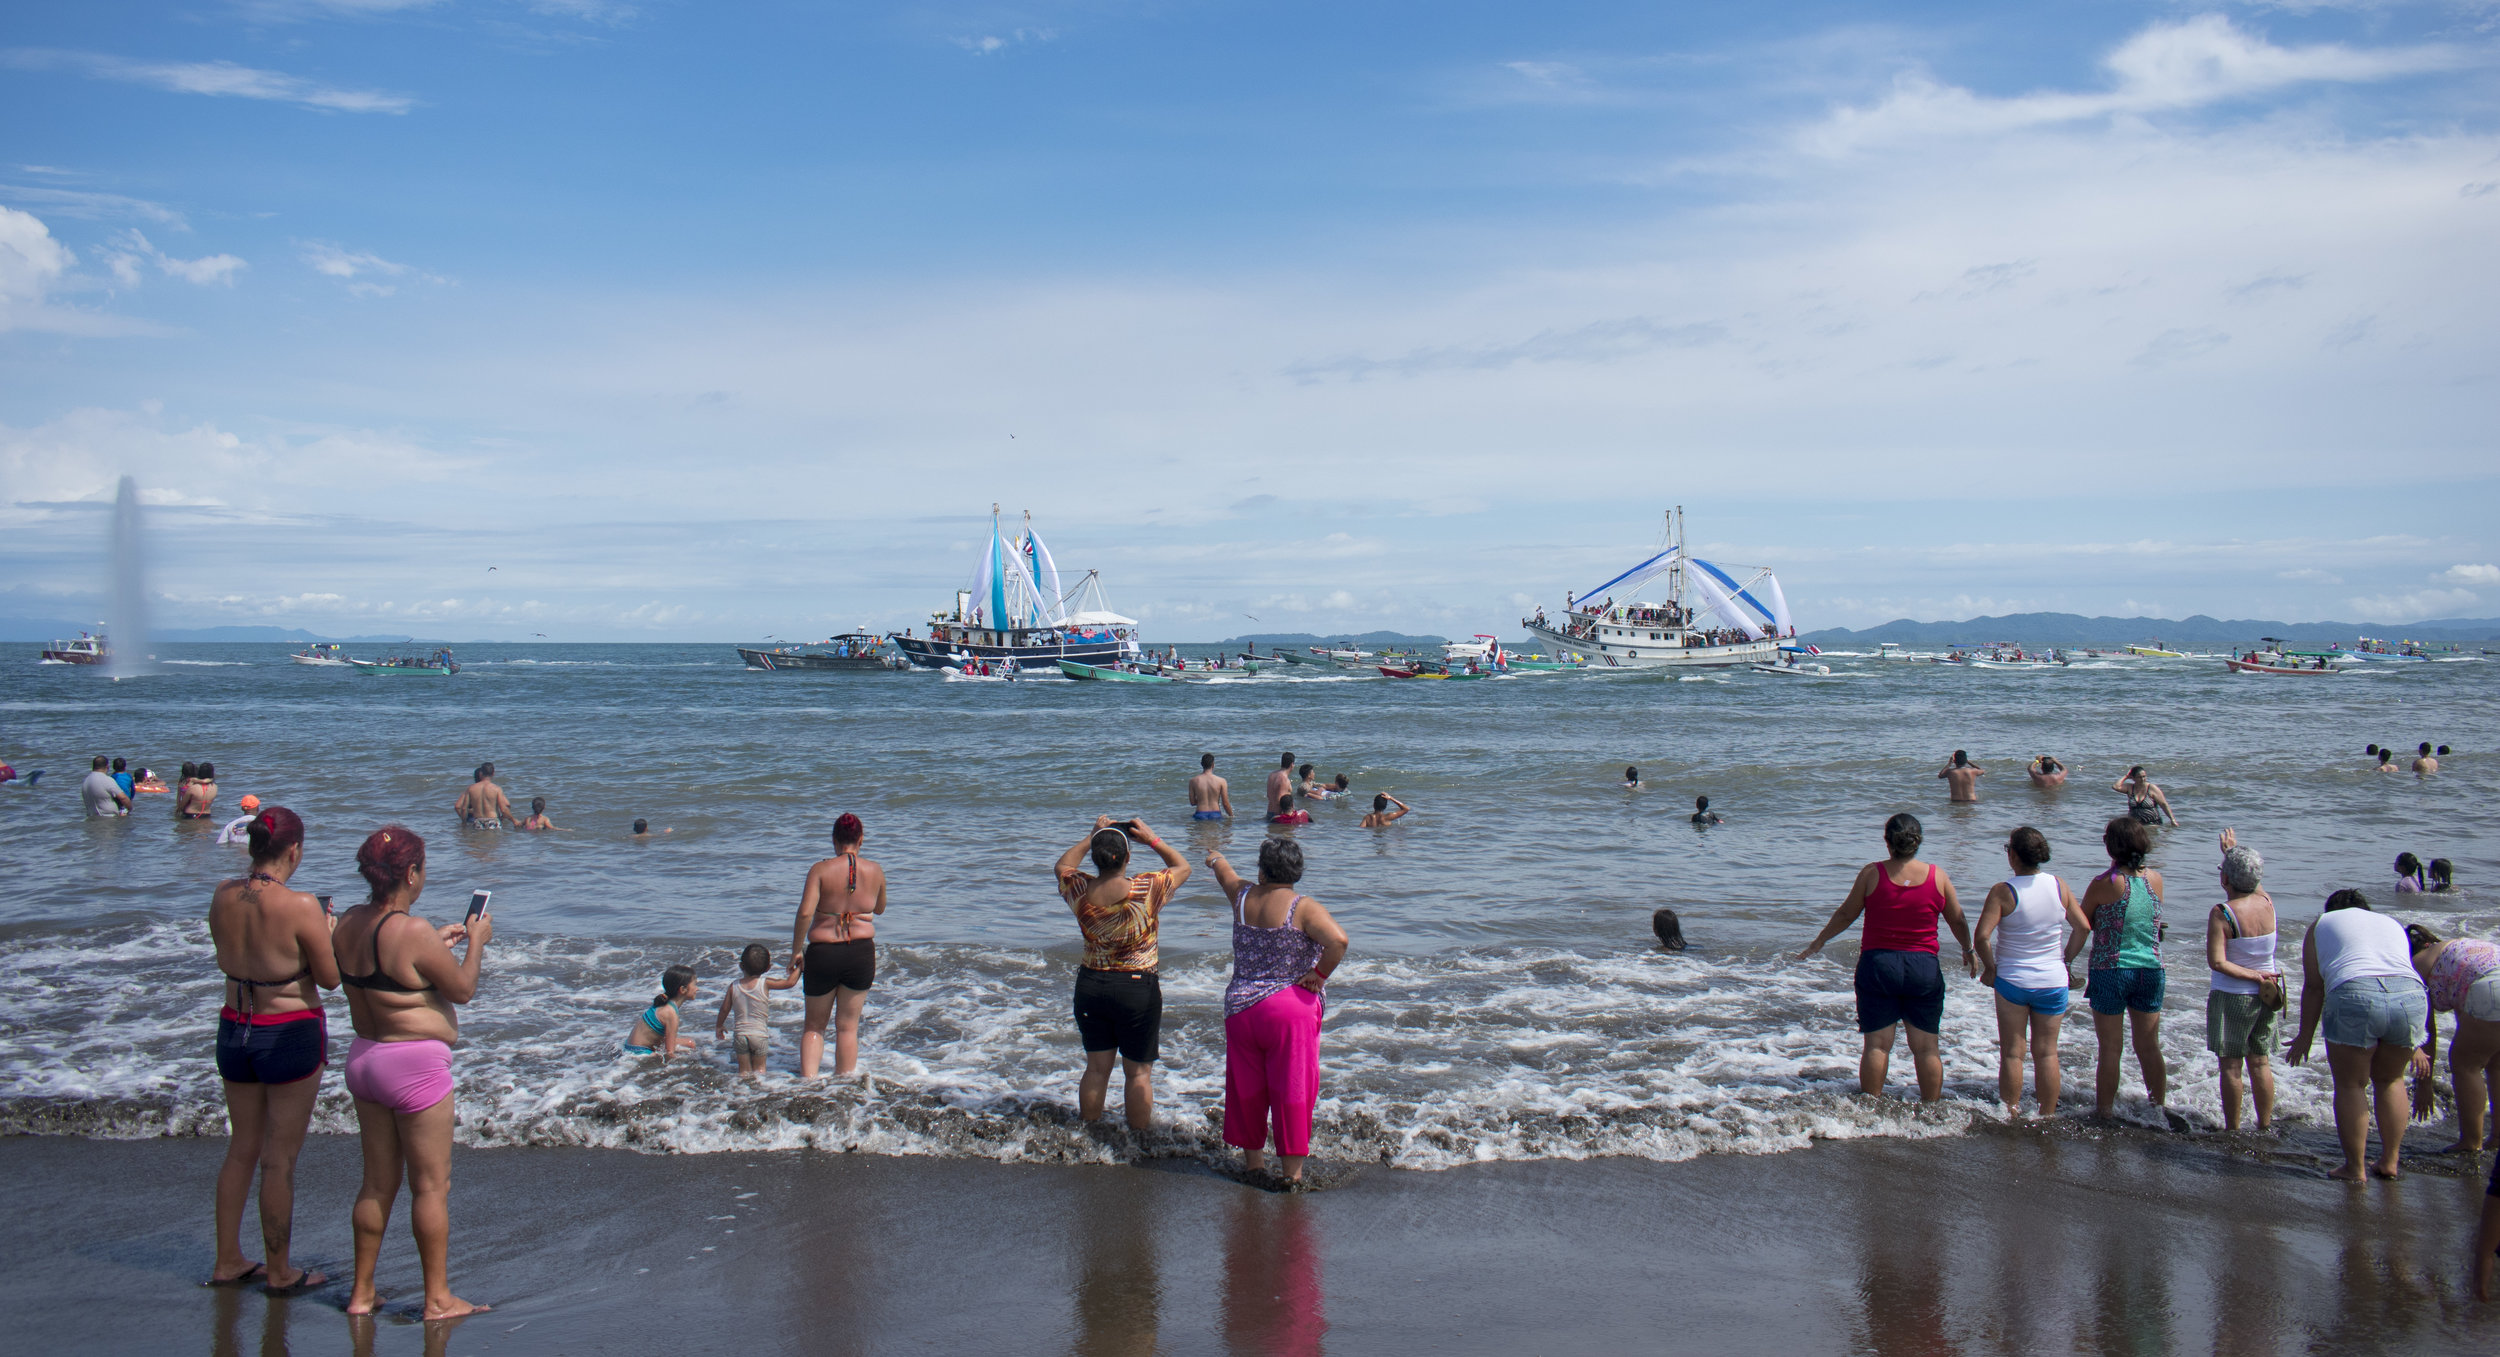 16. Onlookers watch the boat procession of the Virgen del Mar from the beach. The annual celebration is essential to the port town of Puntarenas as it is believed that she will bring protection and good luck to the fishermen.JPG